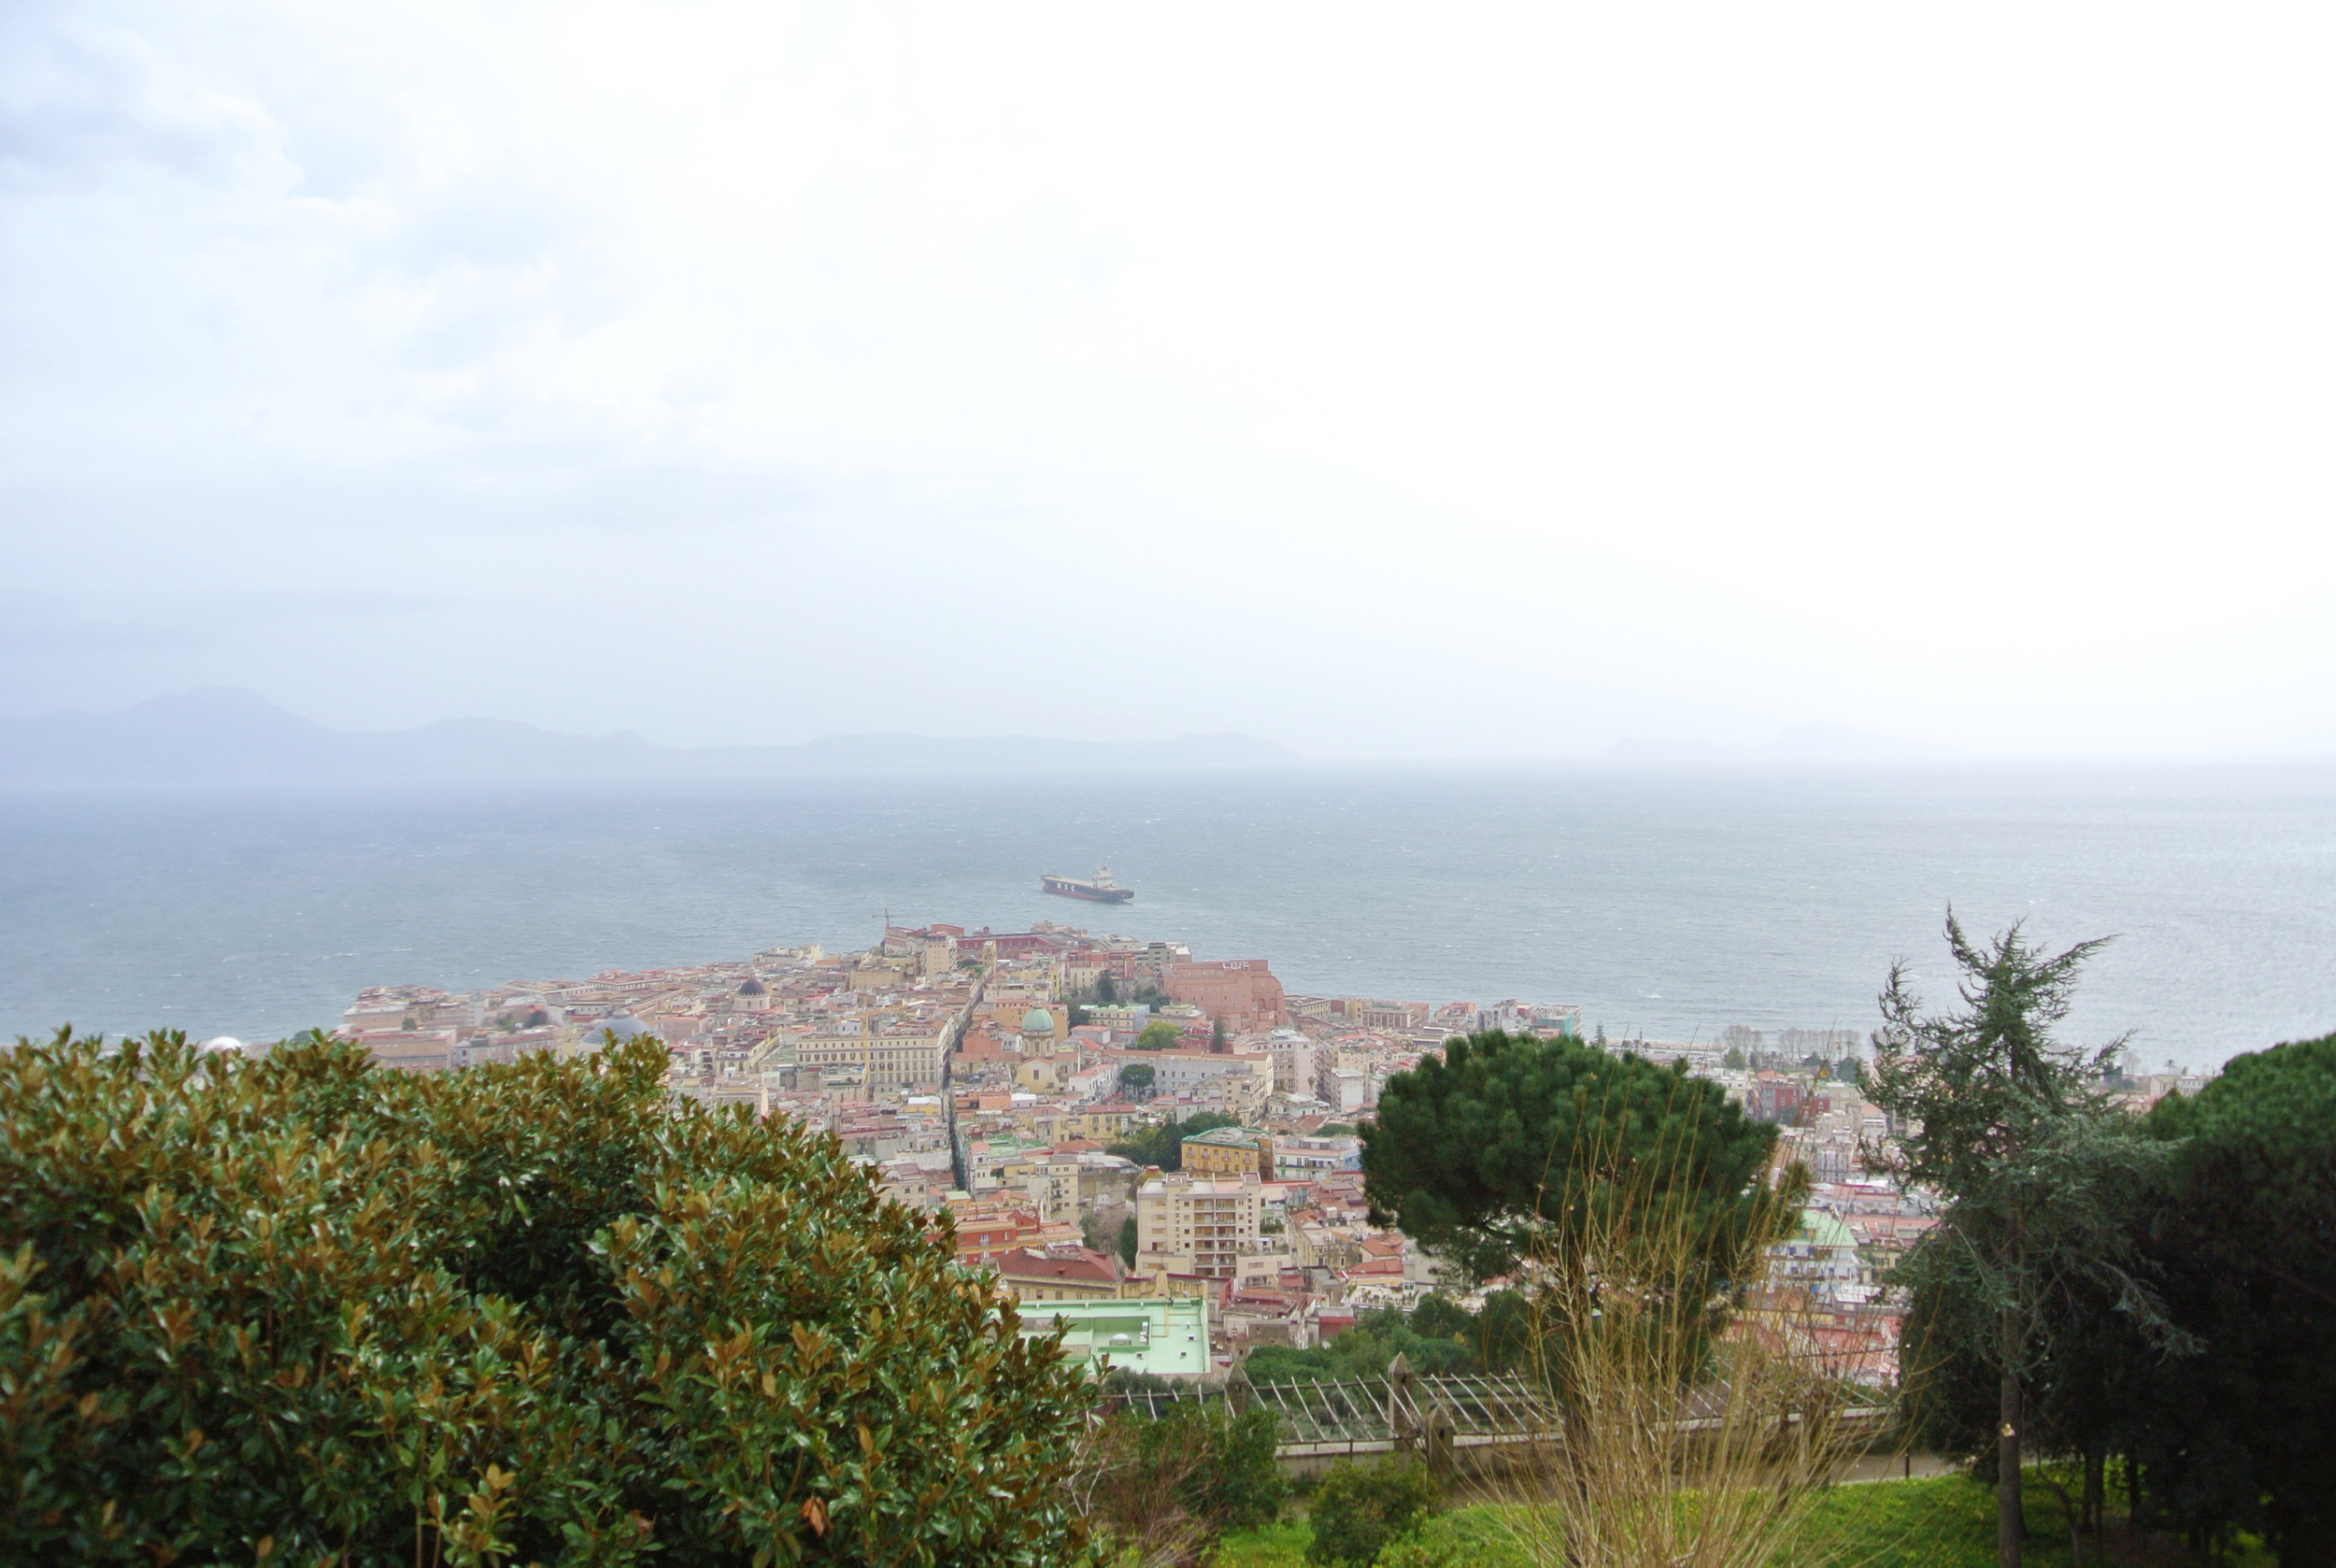 View from Castel Sant'Elmo